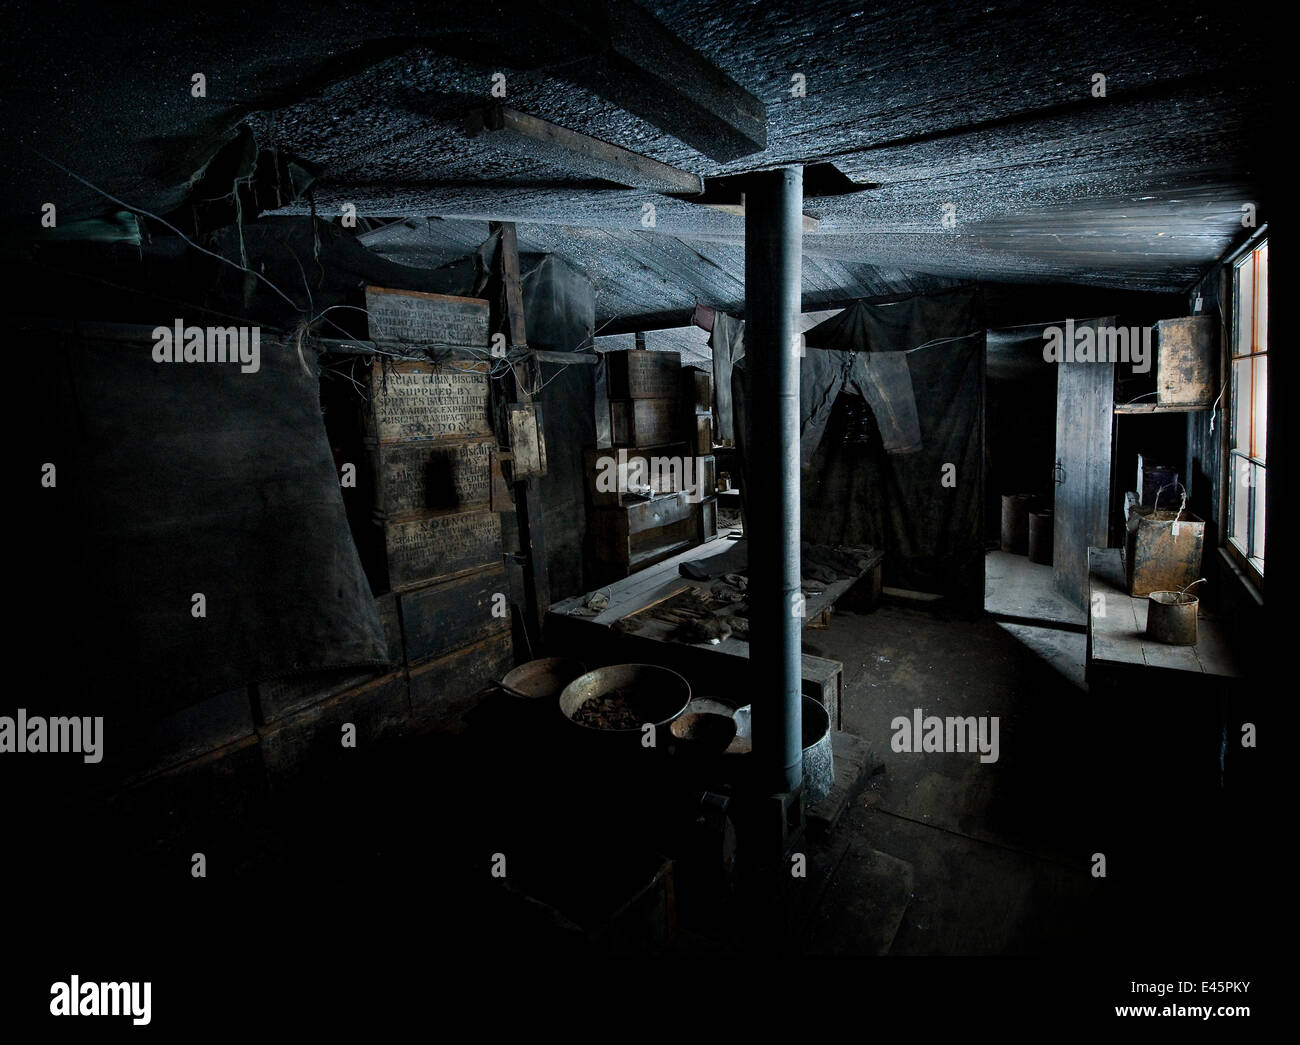 Interior of Captain Scott's hut, built during the British Antarctic Expedition 1910-1913 and frozen in time - Stock Image